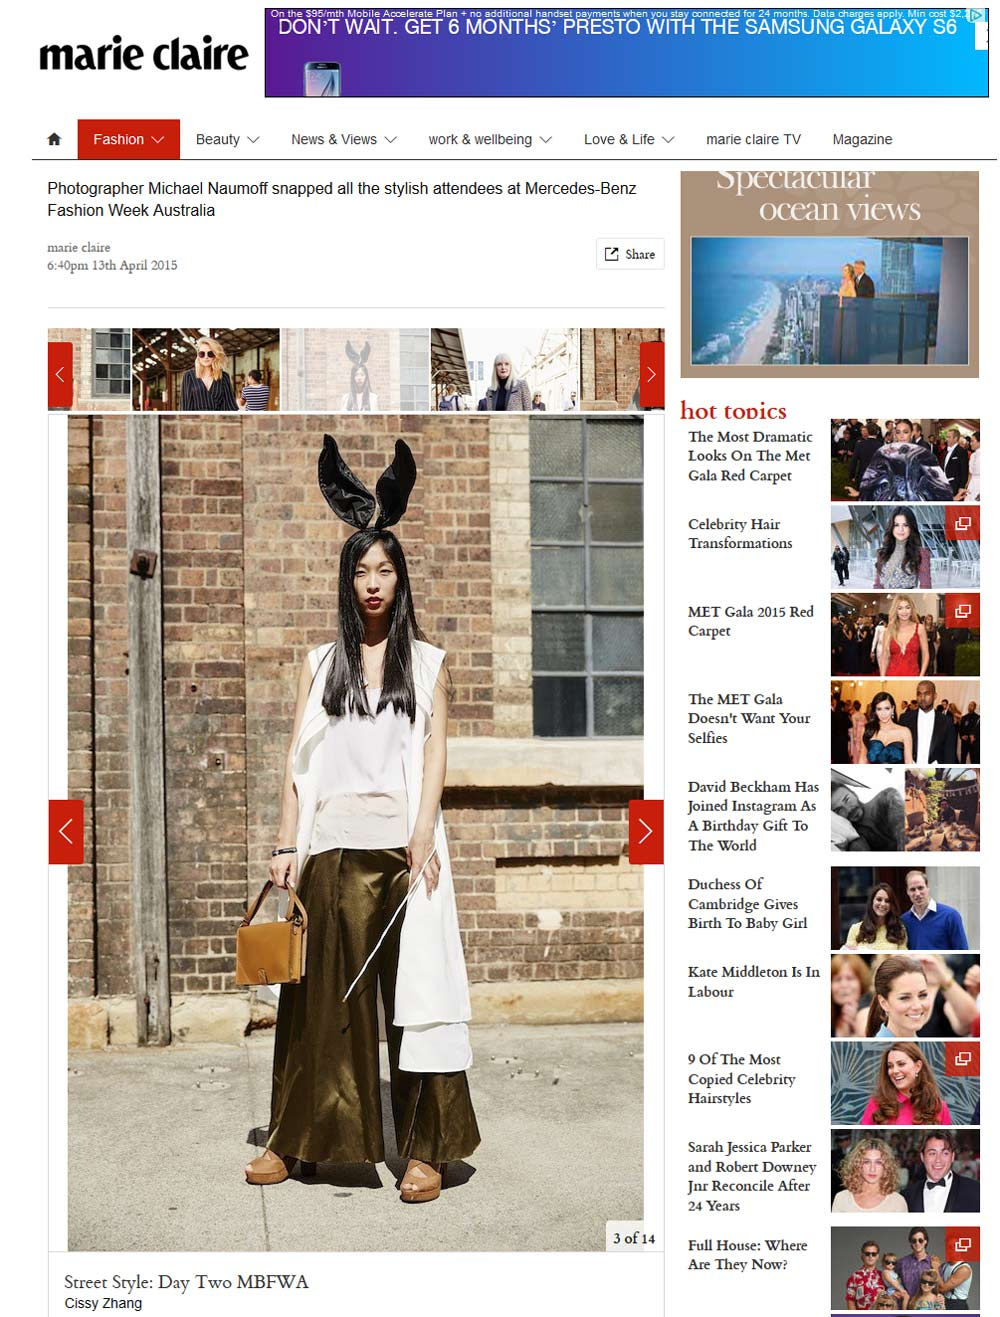 marie claire, cissy zhang, press, girl in the bunny ears